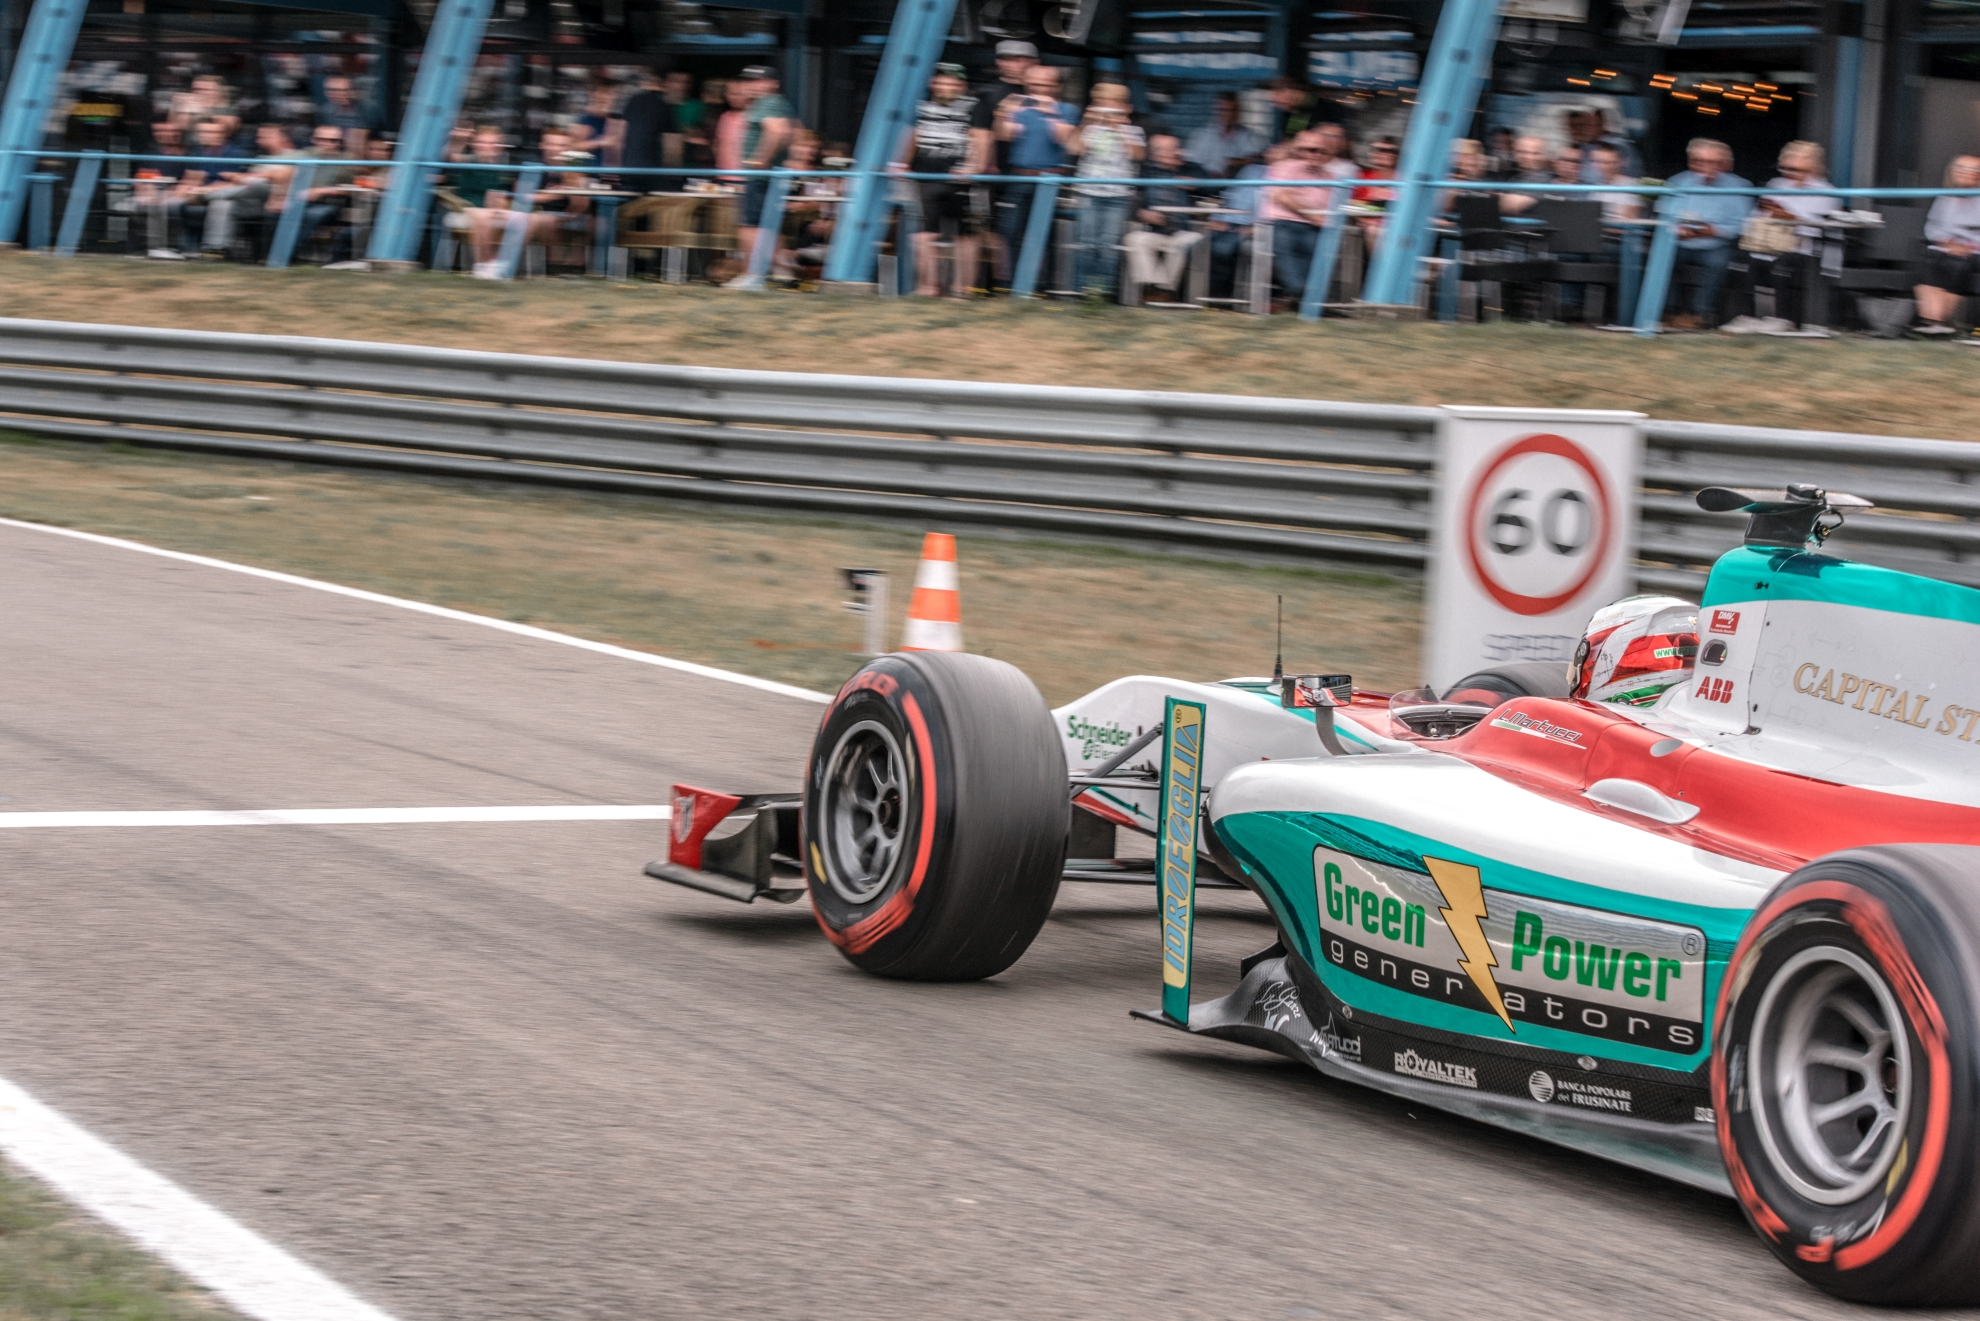 A GP2 car drives into the pit lane in Assen